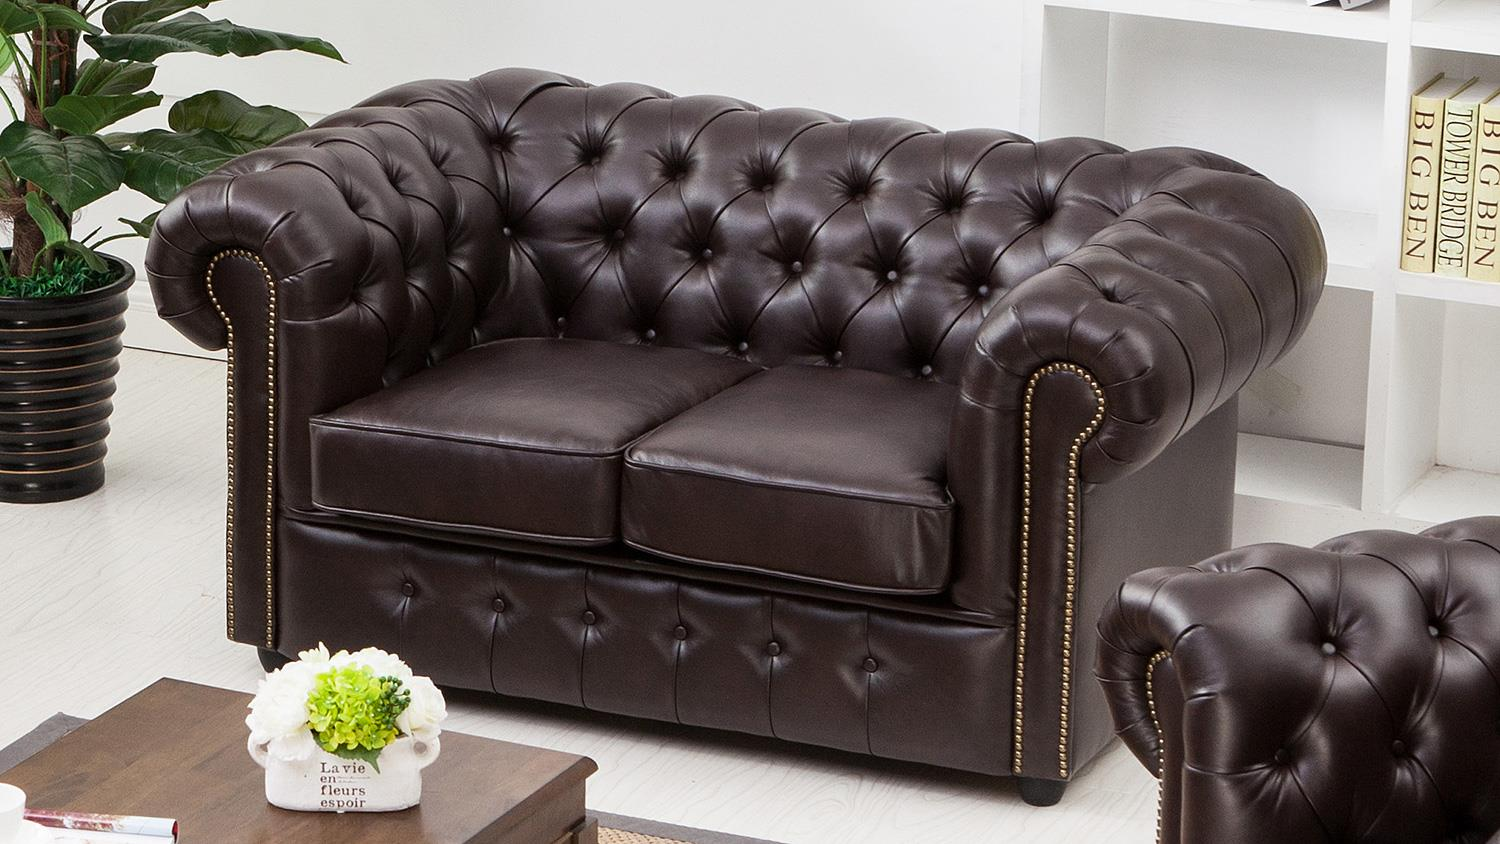 garnitur 3 2 1 chesterfield sofa sessel in dunkelbraun glanz 3 teilig